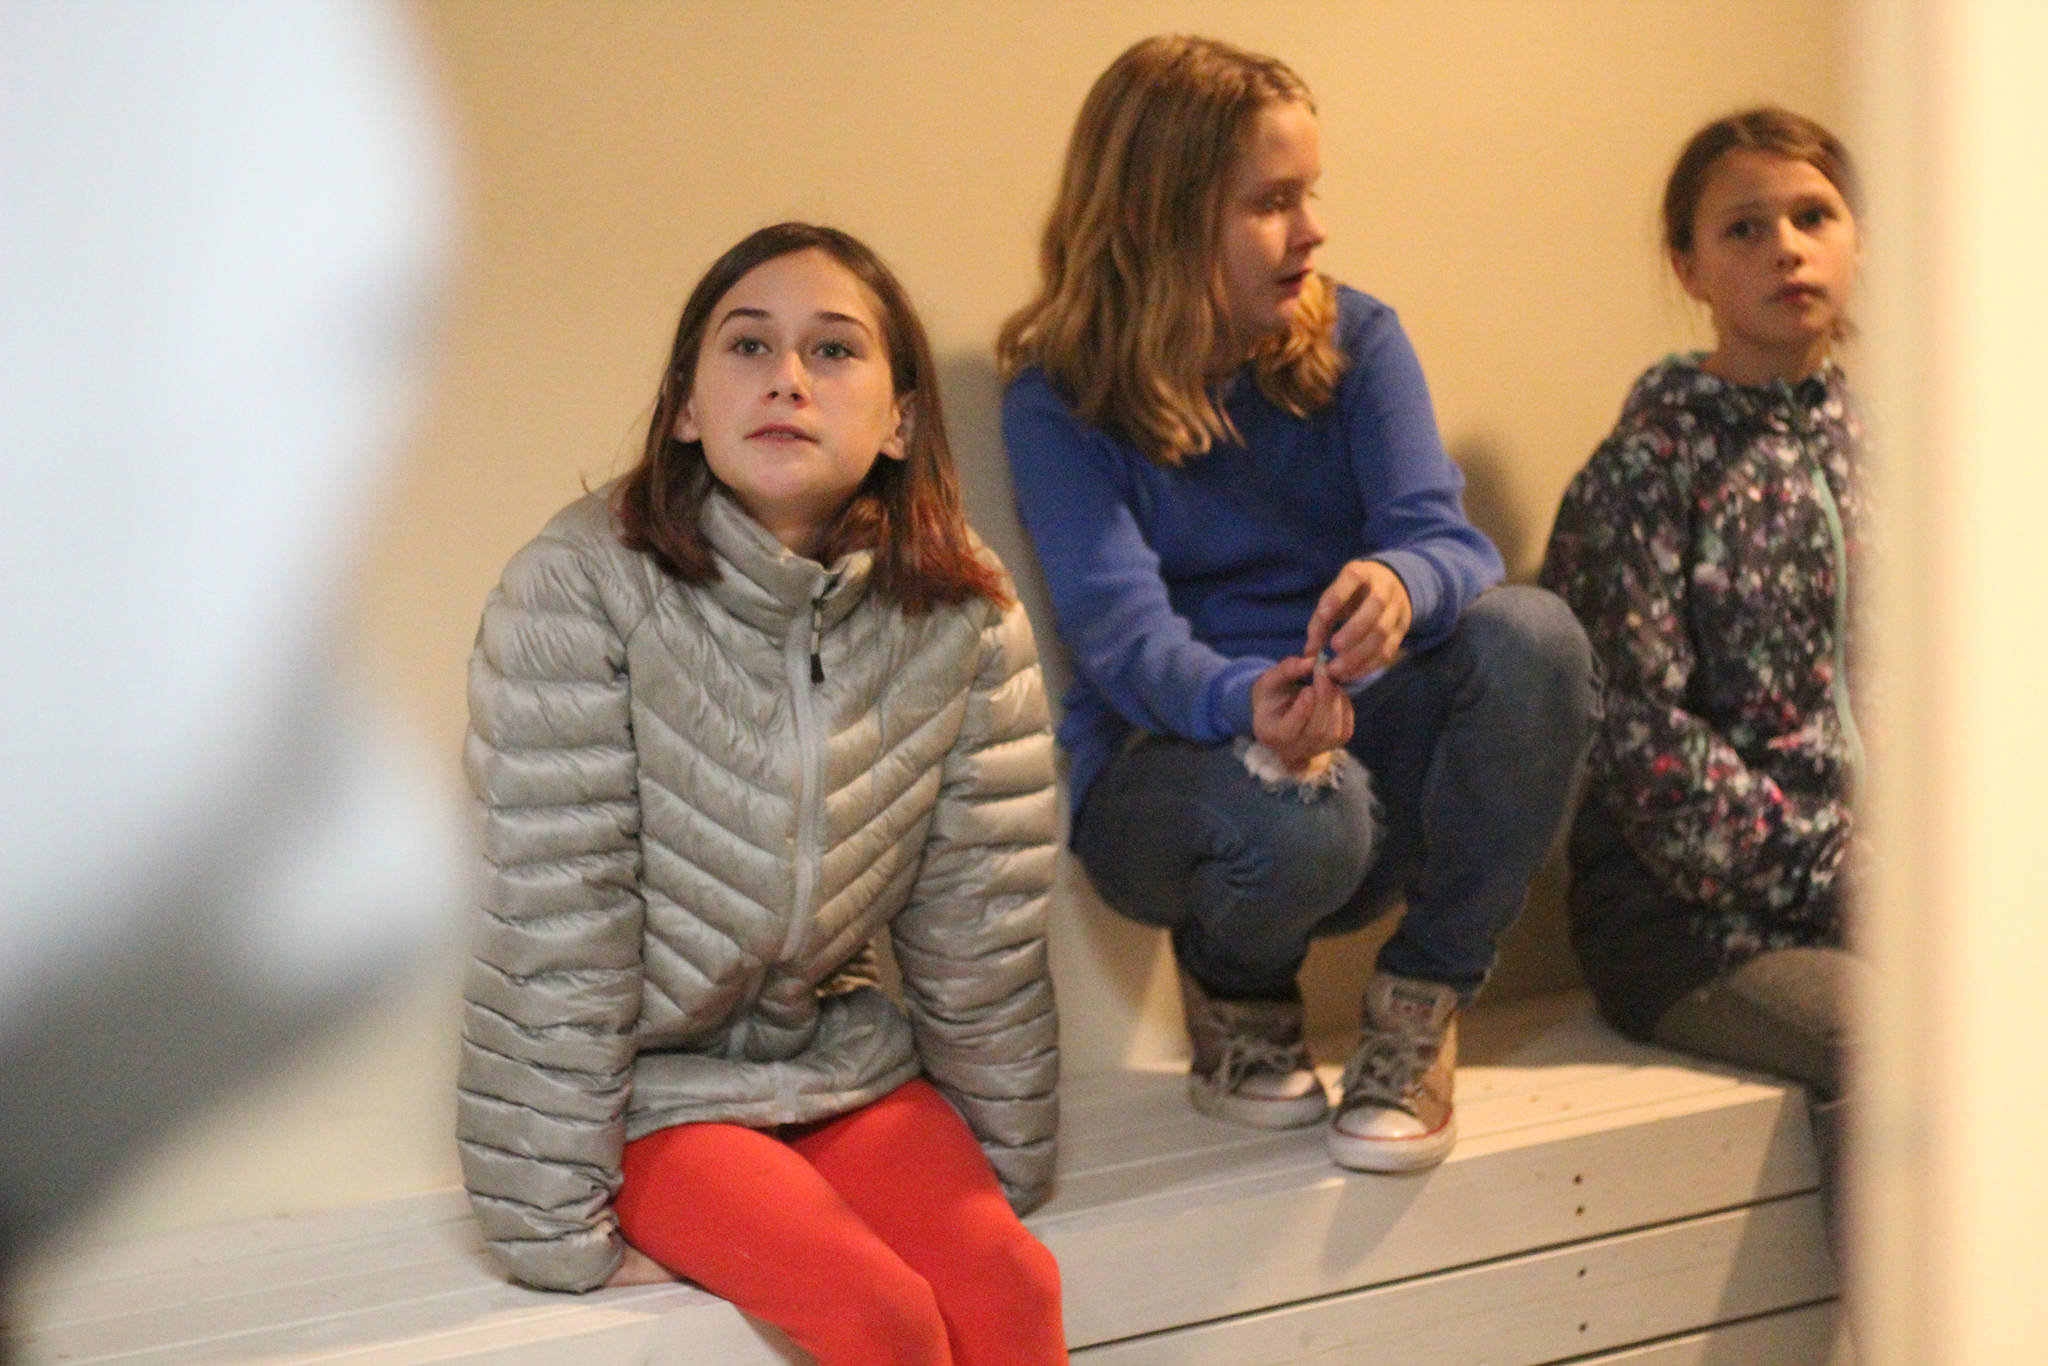 Thea James, Emma Macauly and Natalia Sherwood listen to information about a holding cell while they explore it at the Homer Courthouse on Oct. 8, 2018 in Homer, Alaska. The Fireweed Academy students and their classmates took a field trip to the courthouse to learn more about its inner workings and the law. (Photo by Megan Pacer/Homer News)